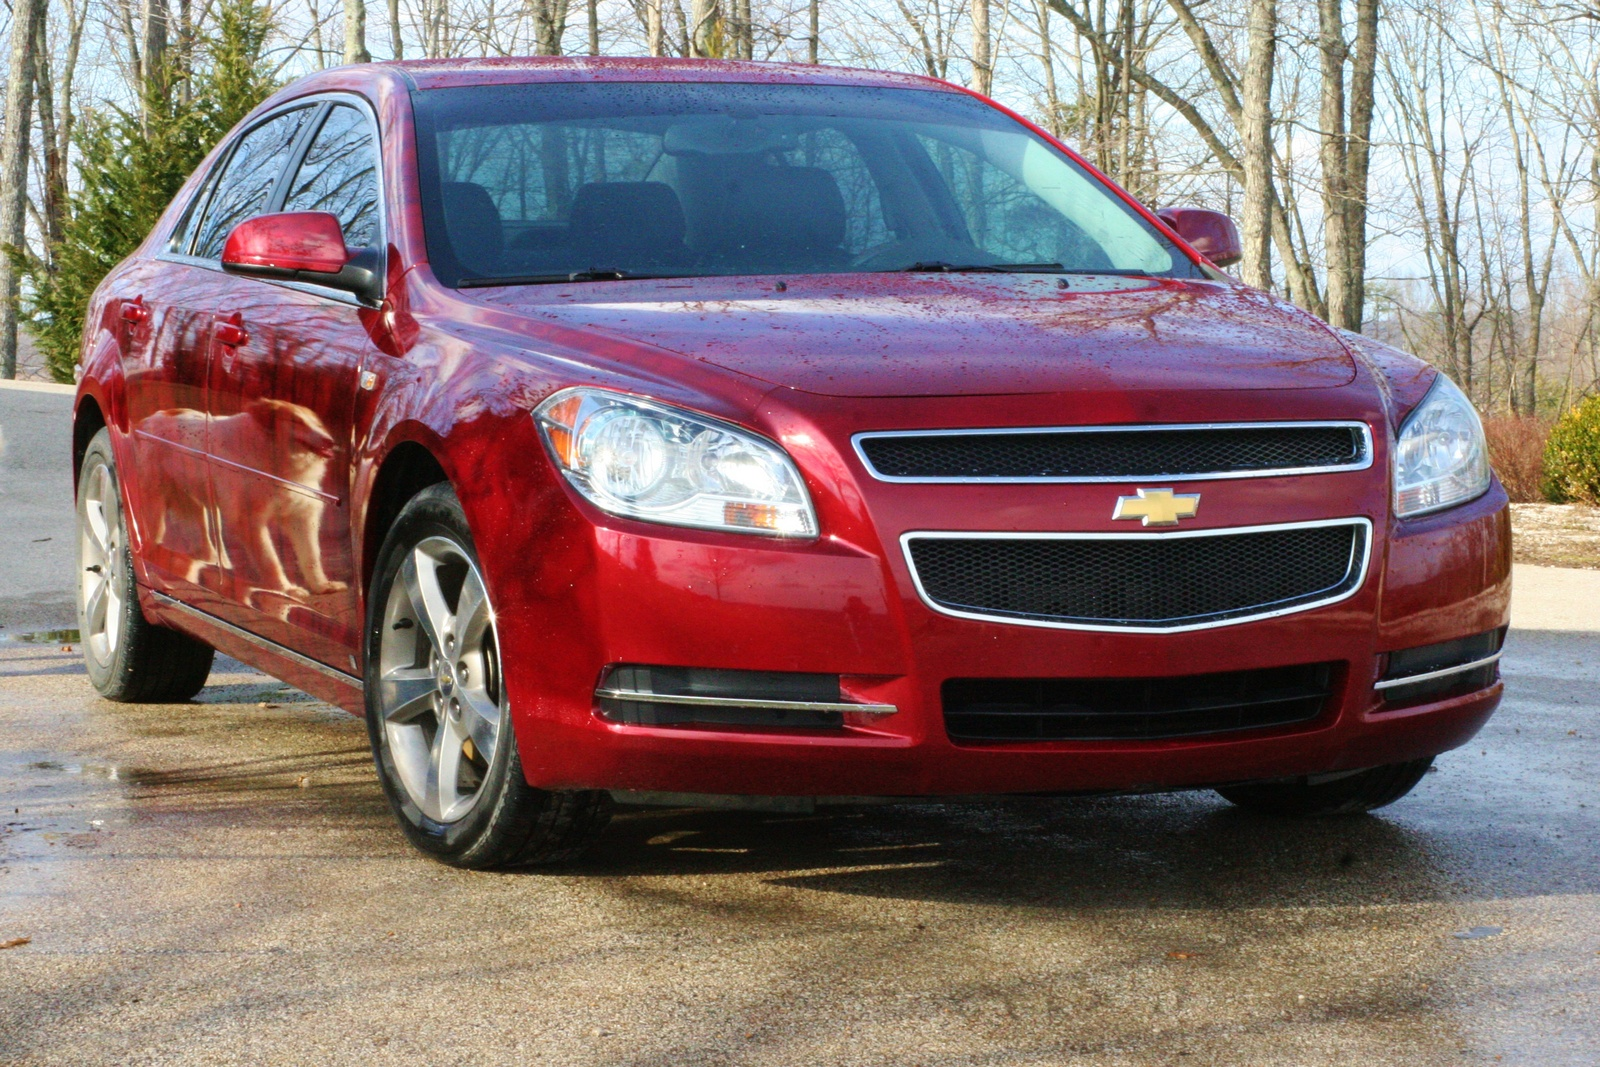 2008 chevrolet malibu pictures cargurus. Cars Review. Best American Auto & Cars Review